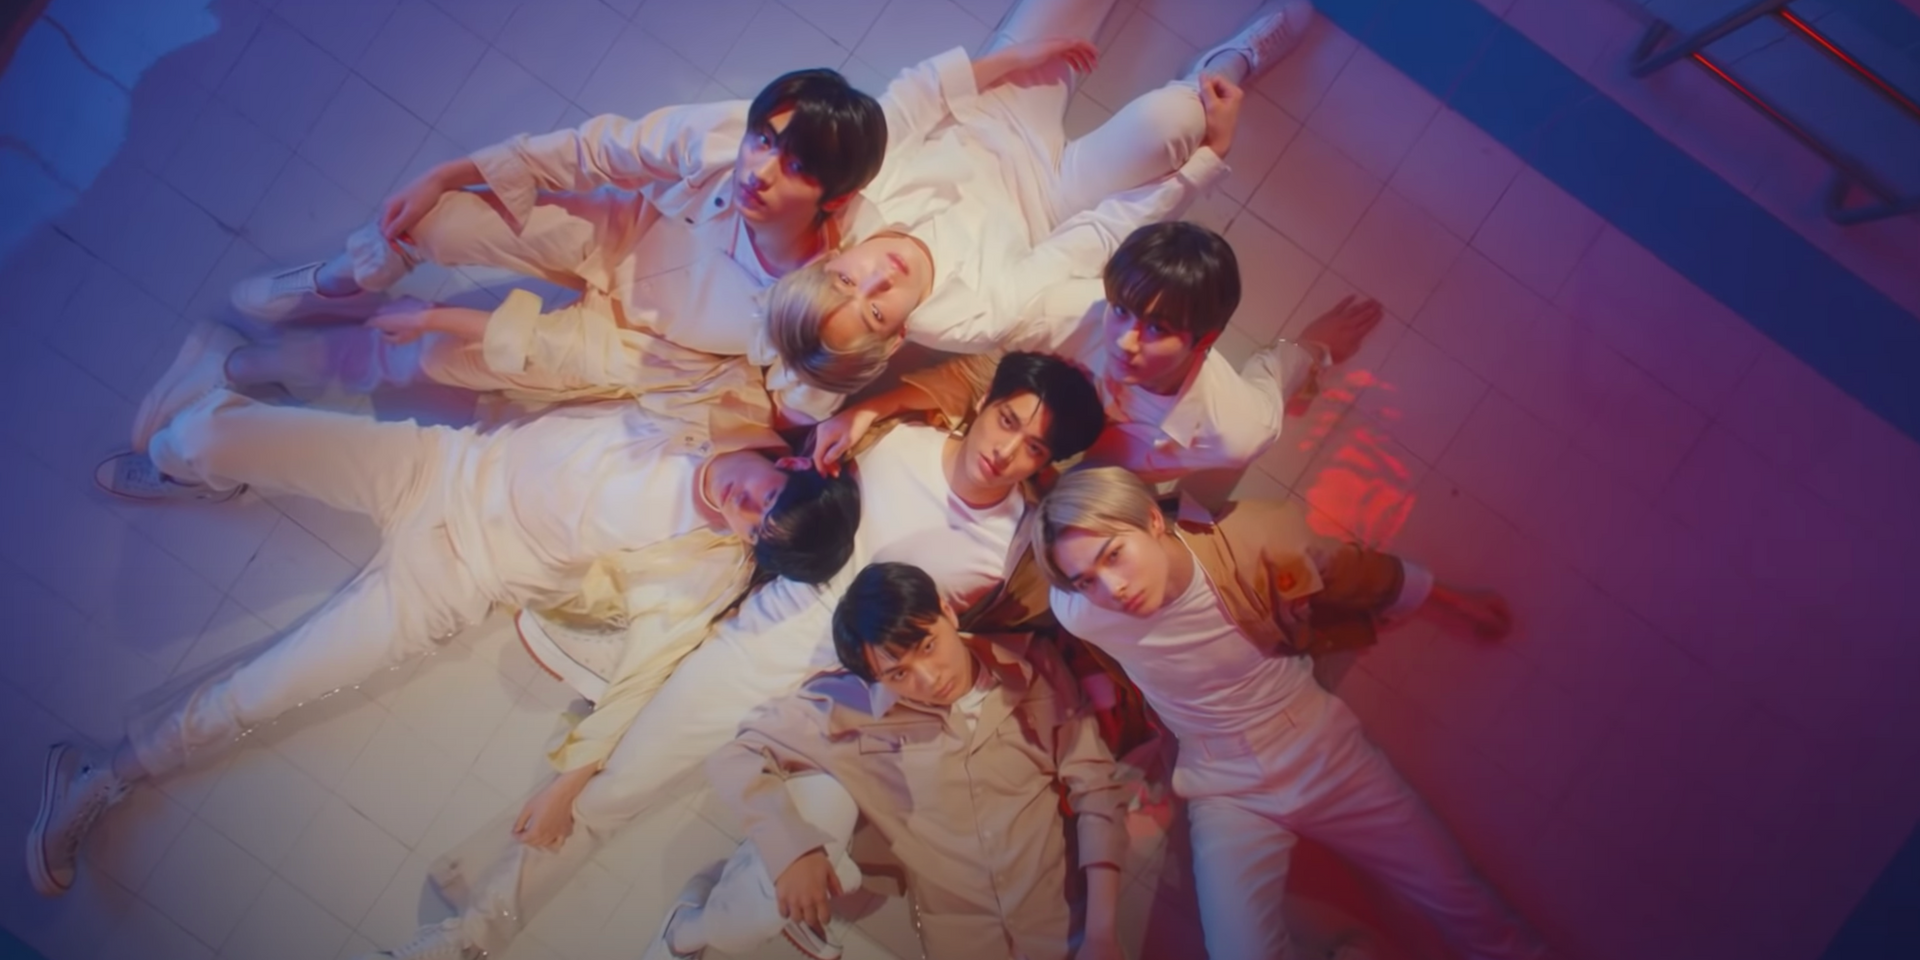 ENHYPEN move through different worlds in 'FEVER' music video – watch